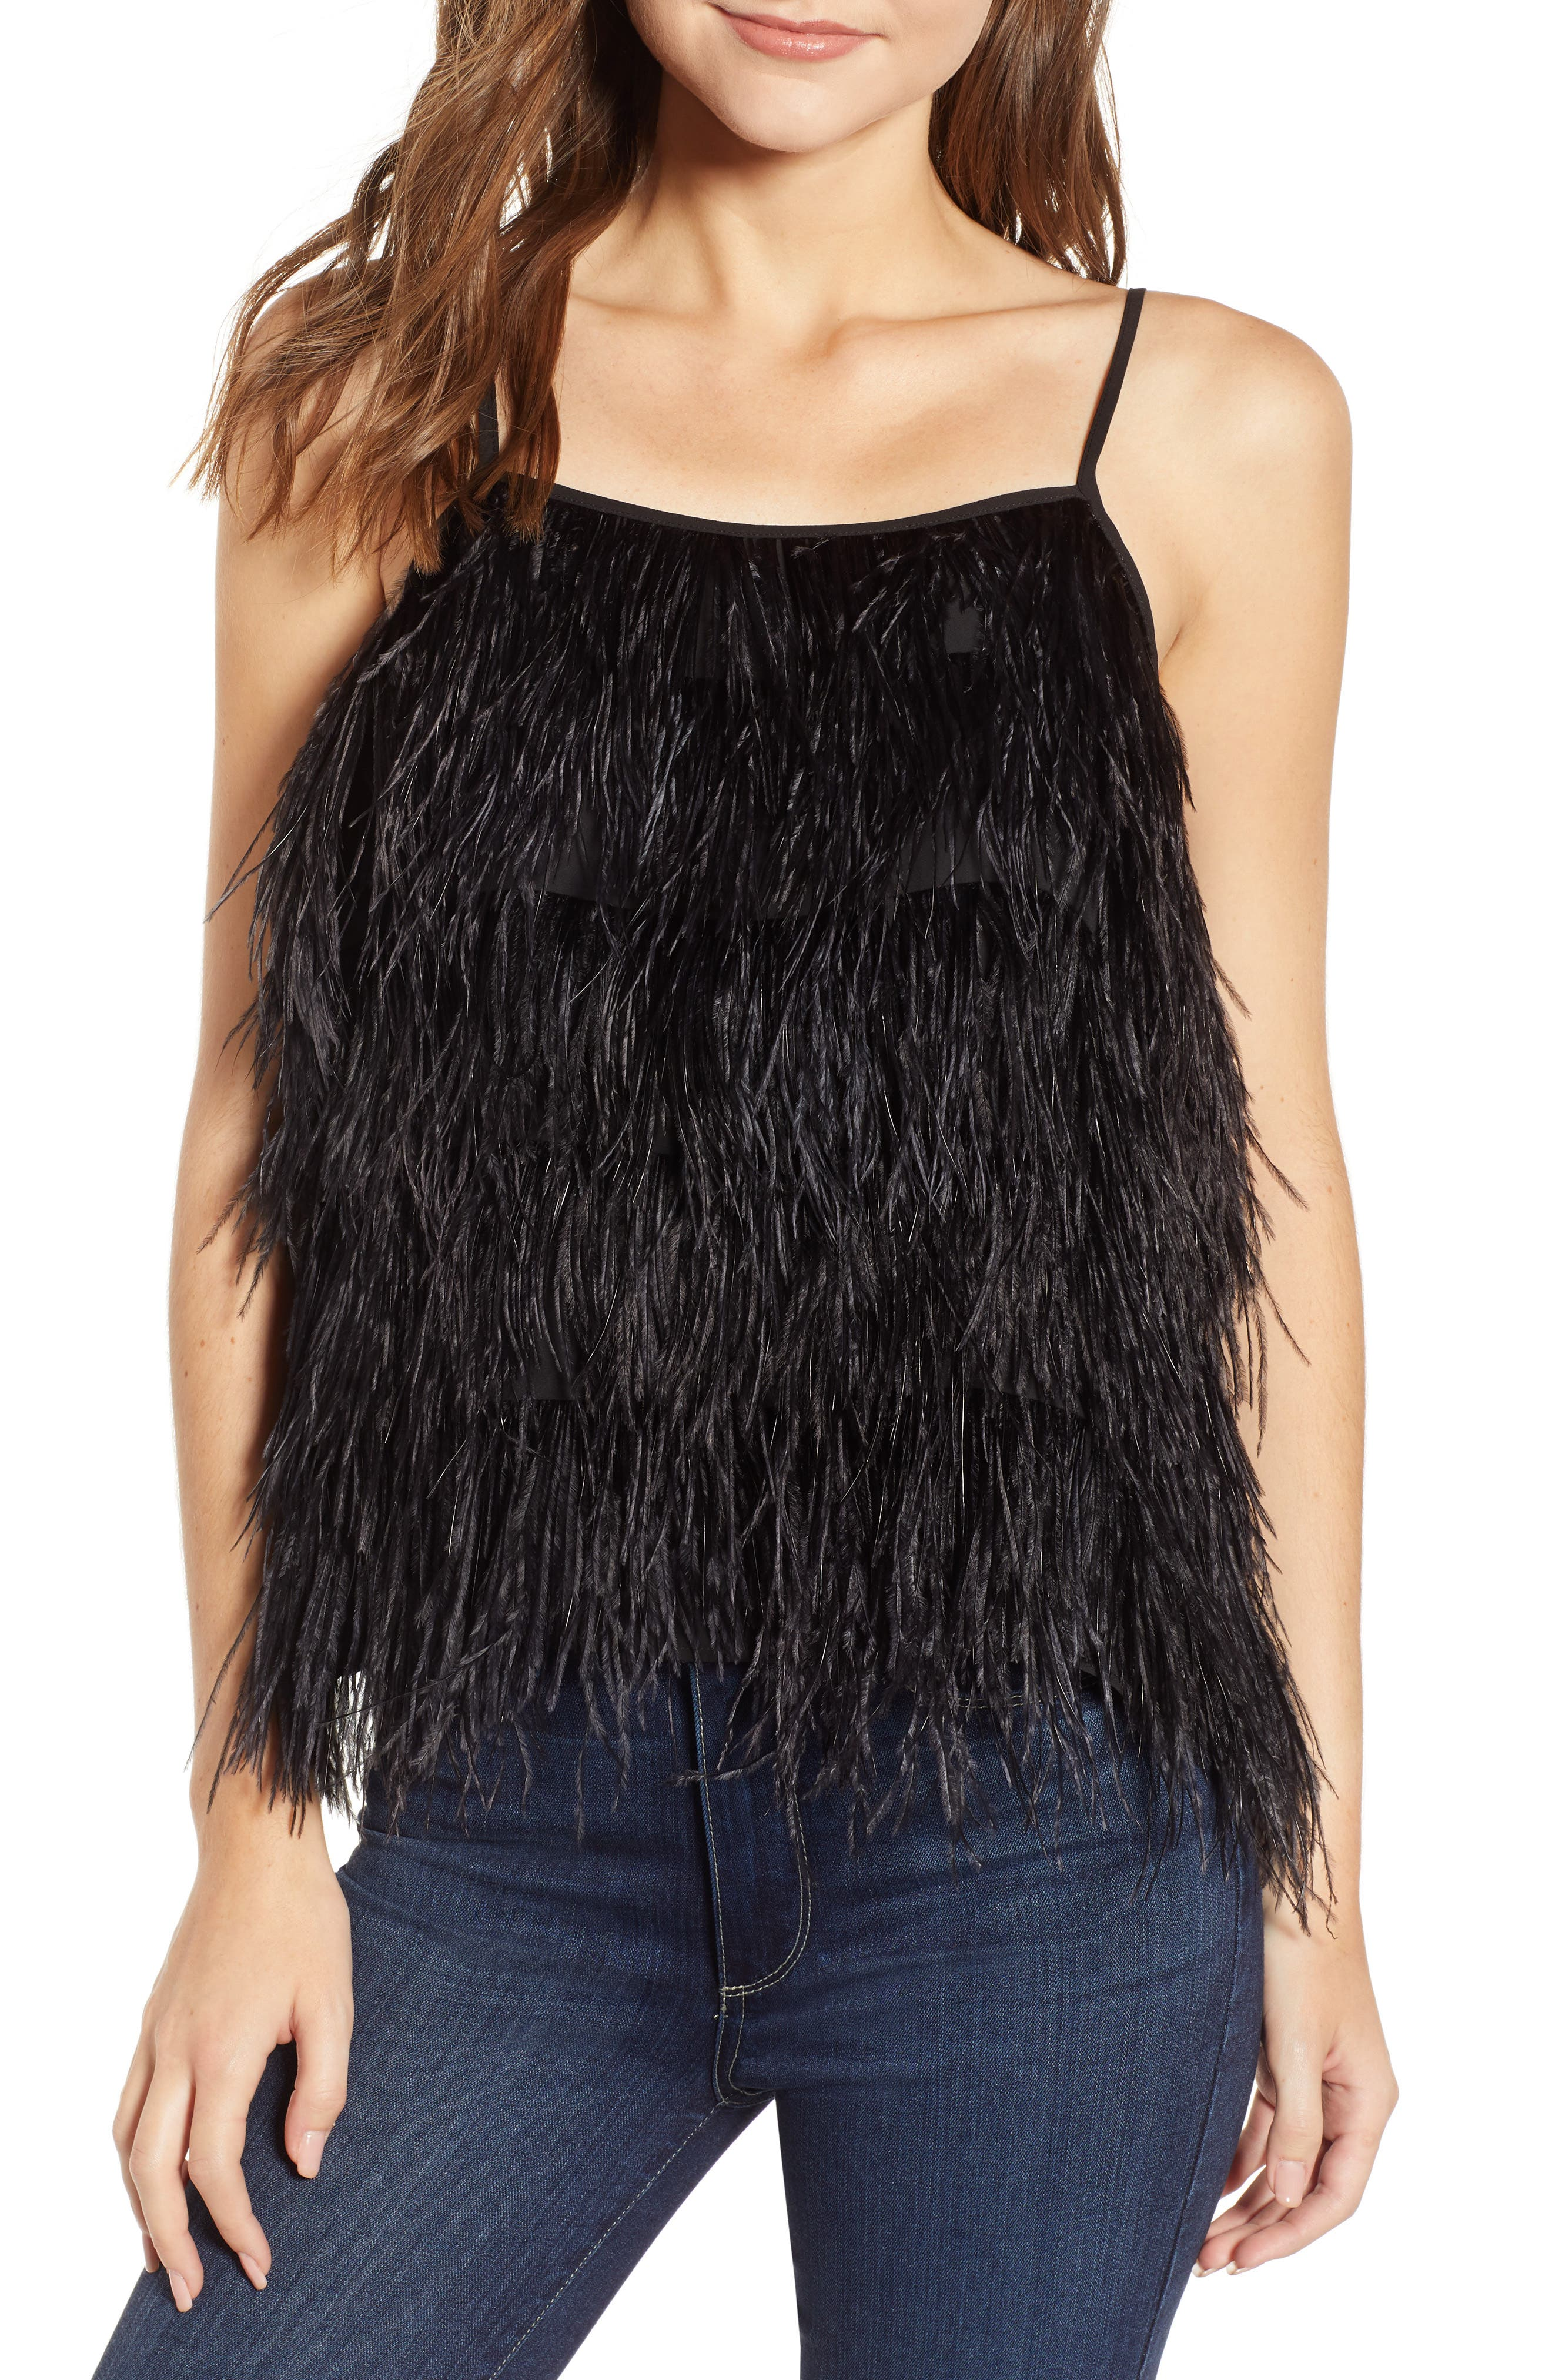 CHELSEA28, Feather Camisole, Main thumbnail 1, color, 001